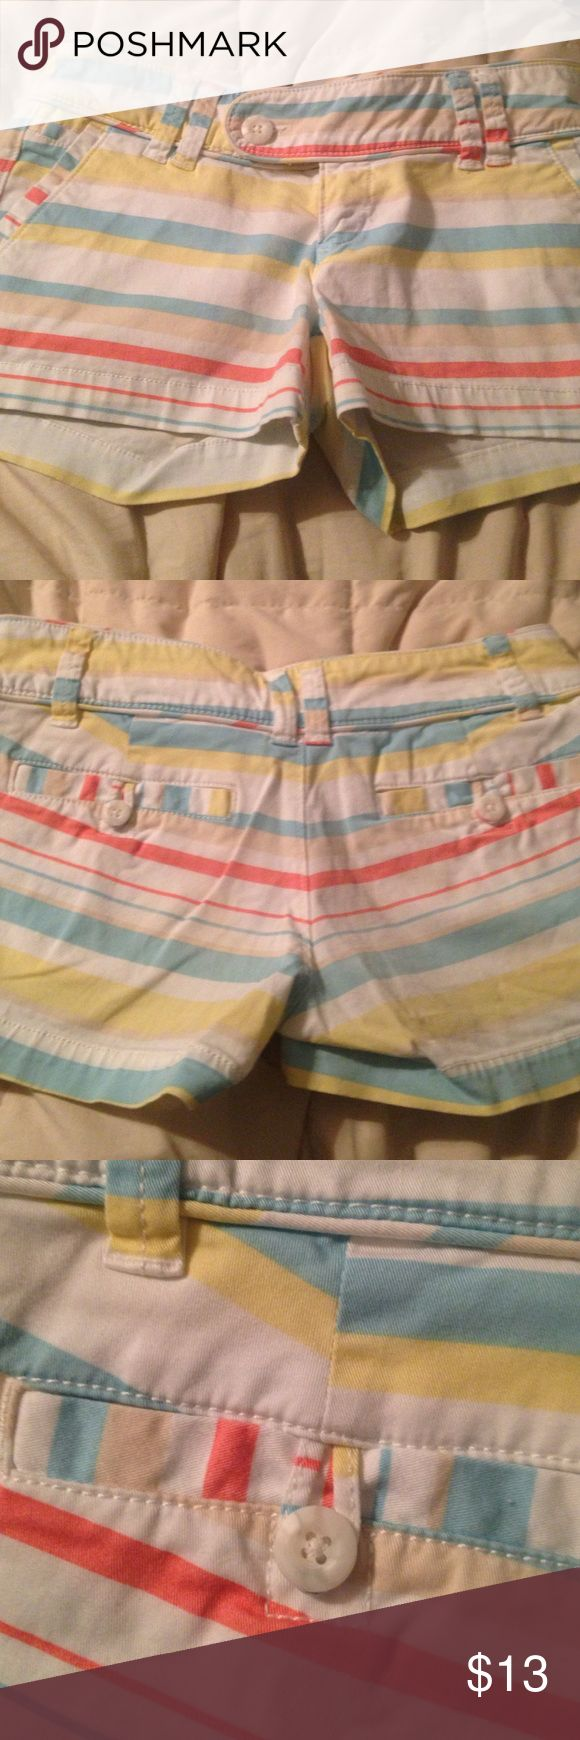 Preppy striped shorts Pretty pastel striped shorts with button and zipper front, button back pockets ready for spring. Pale coral, Aqua, yellow and khaki stripes on white. So cute!! Just outgrown. Excellent condition!! Red Camel Shorts